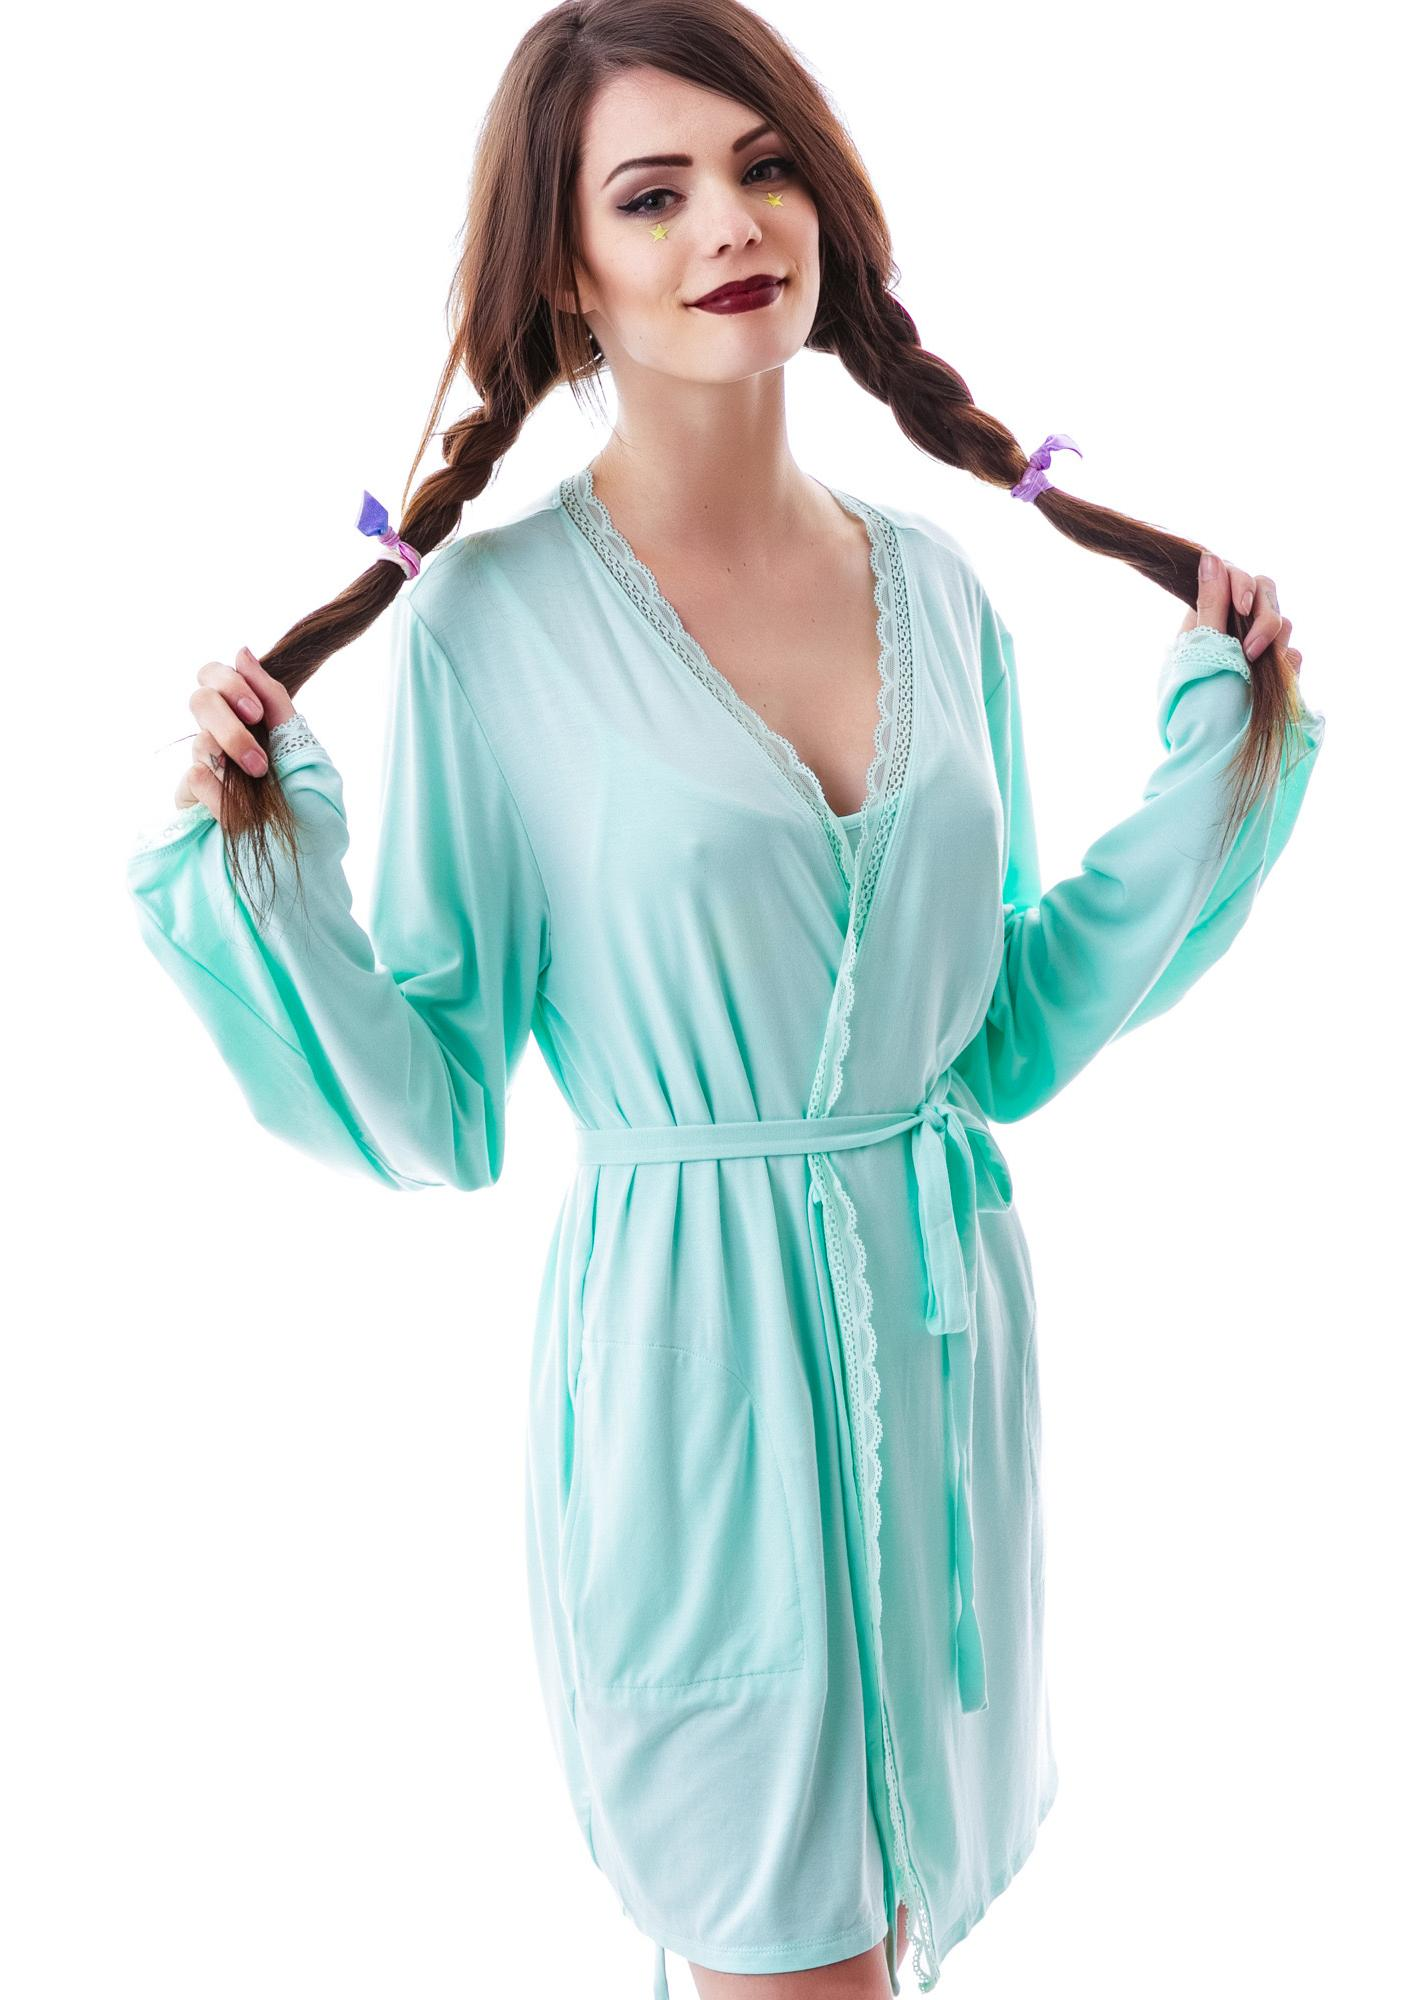 Wildfox Couture Mon Cheri Never Get Dressed Robe